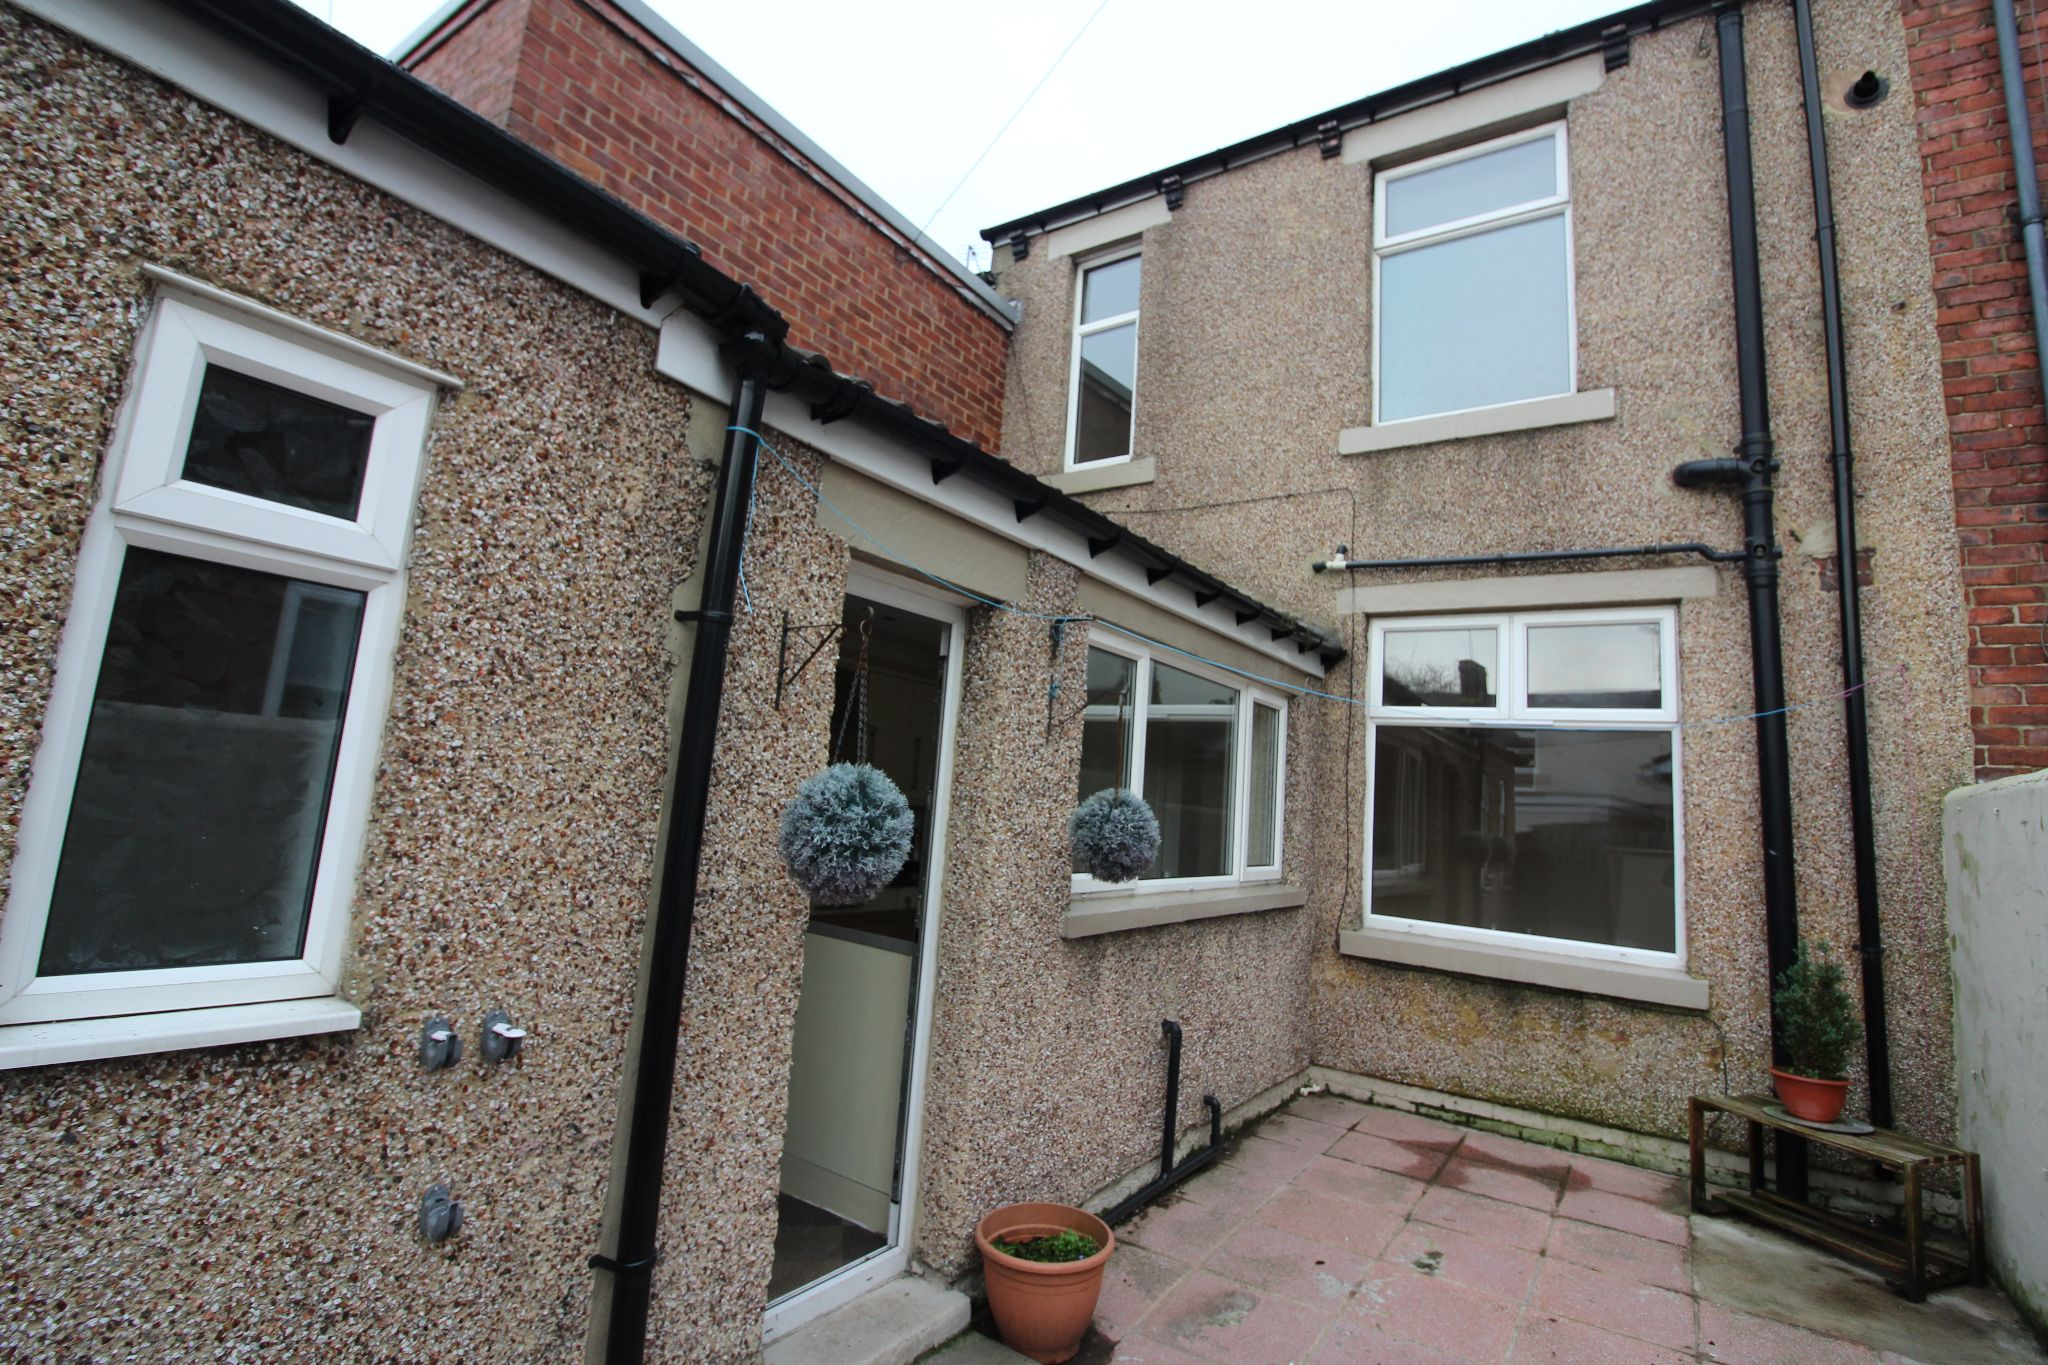 3 bedroom mid terraced house For Sale in Crook - Photograph 40.